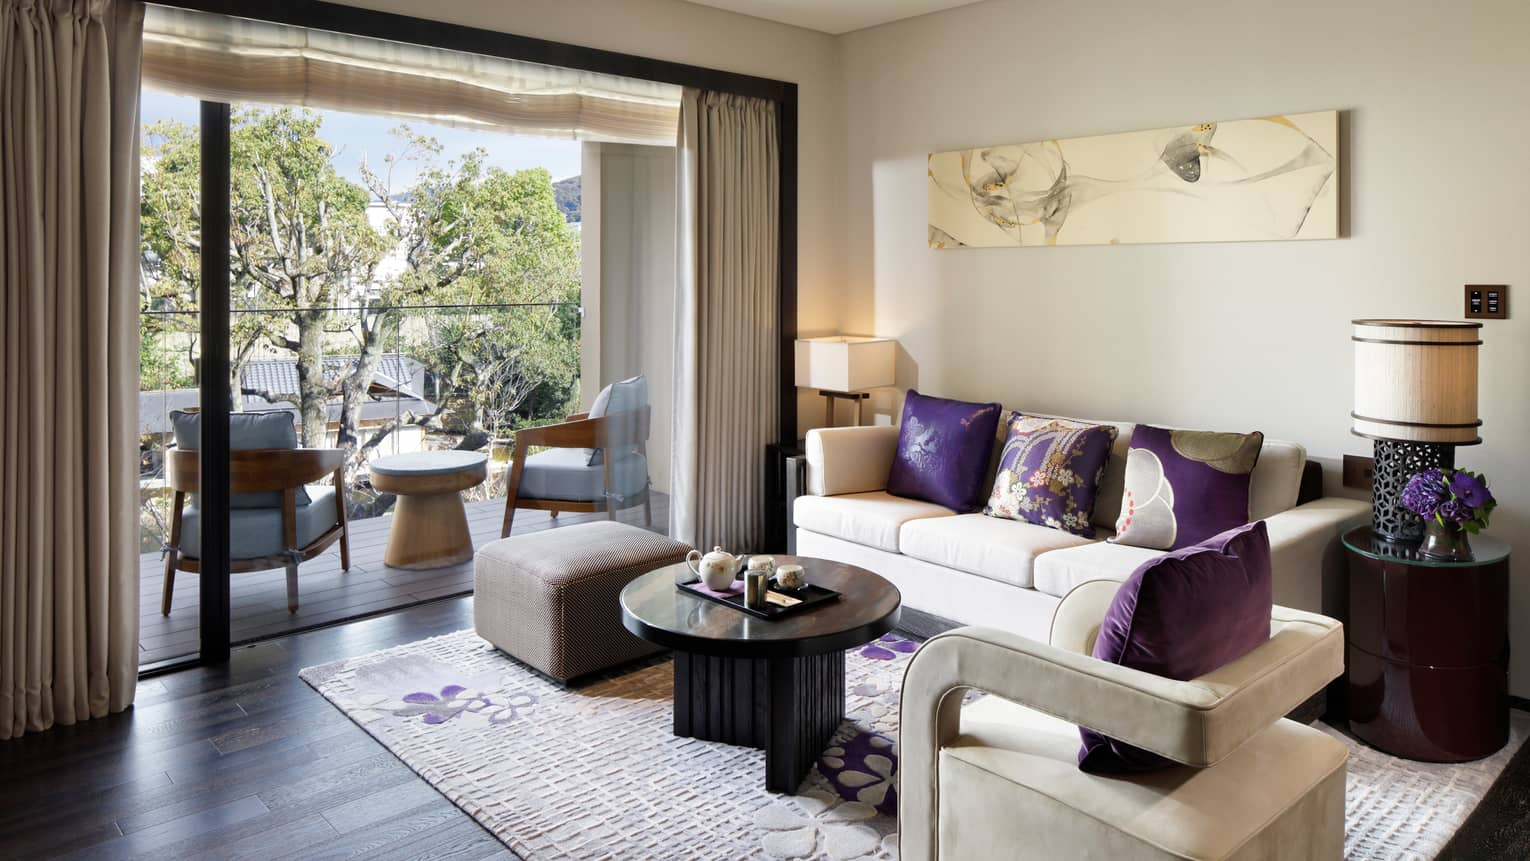 Living room sofa, armchair with plush purple pillows by open patio door, chairs